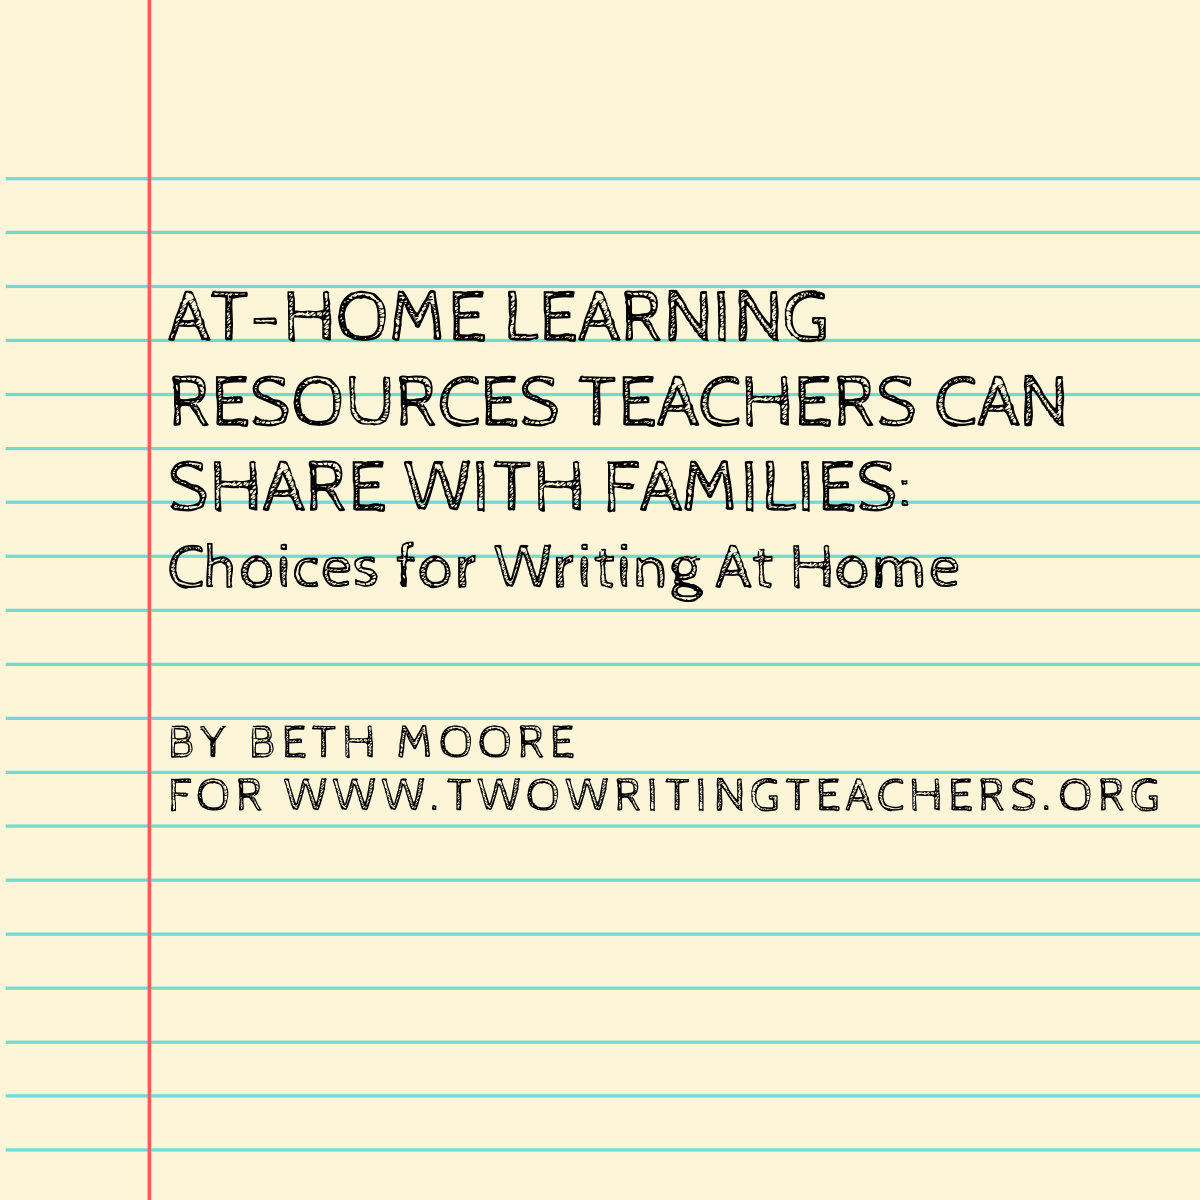 At-Home Learning Resources Teachers Can Share With Families: Choices for Writing